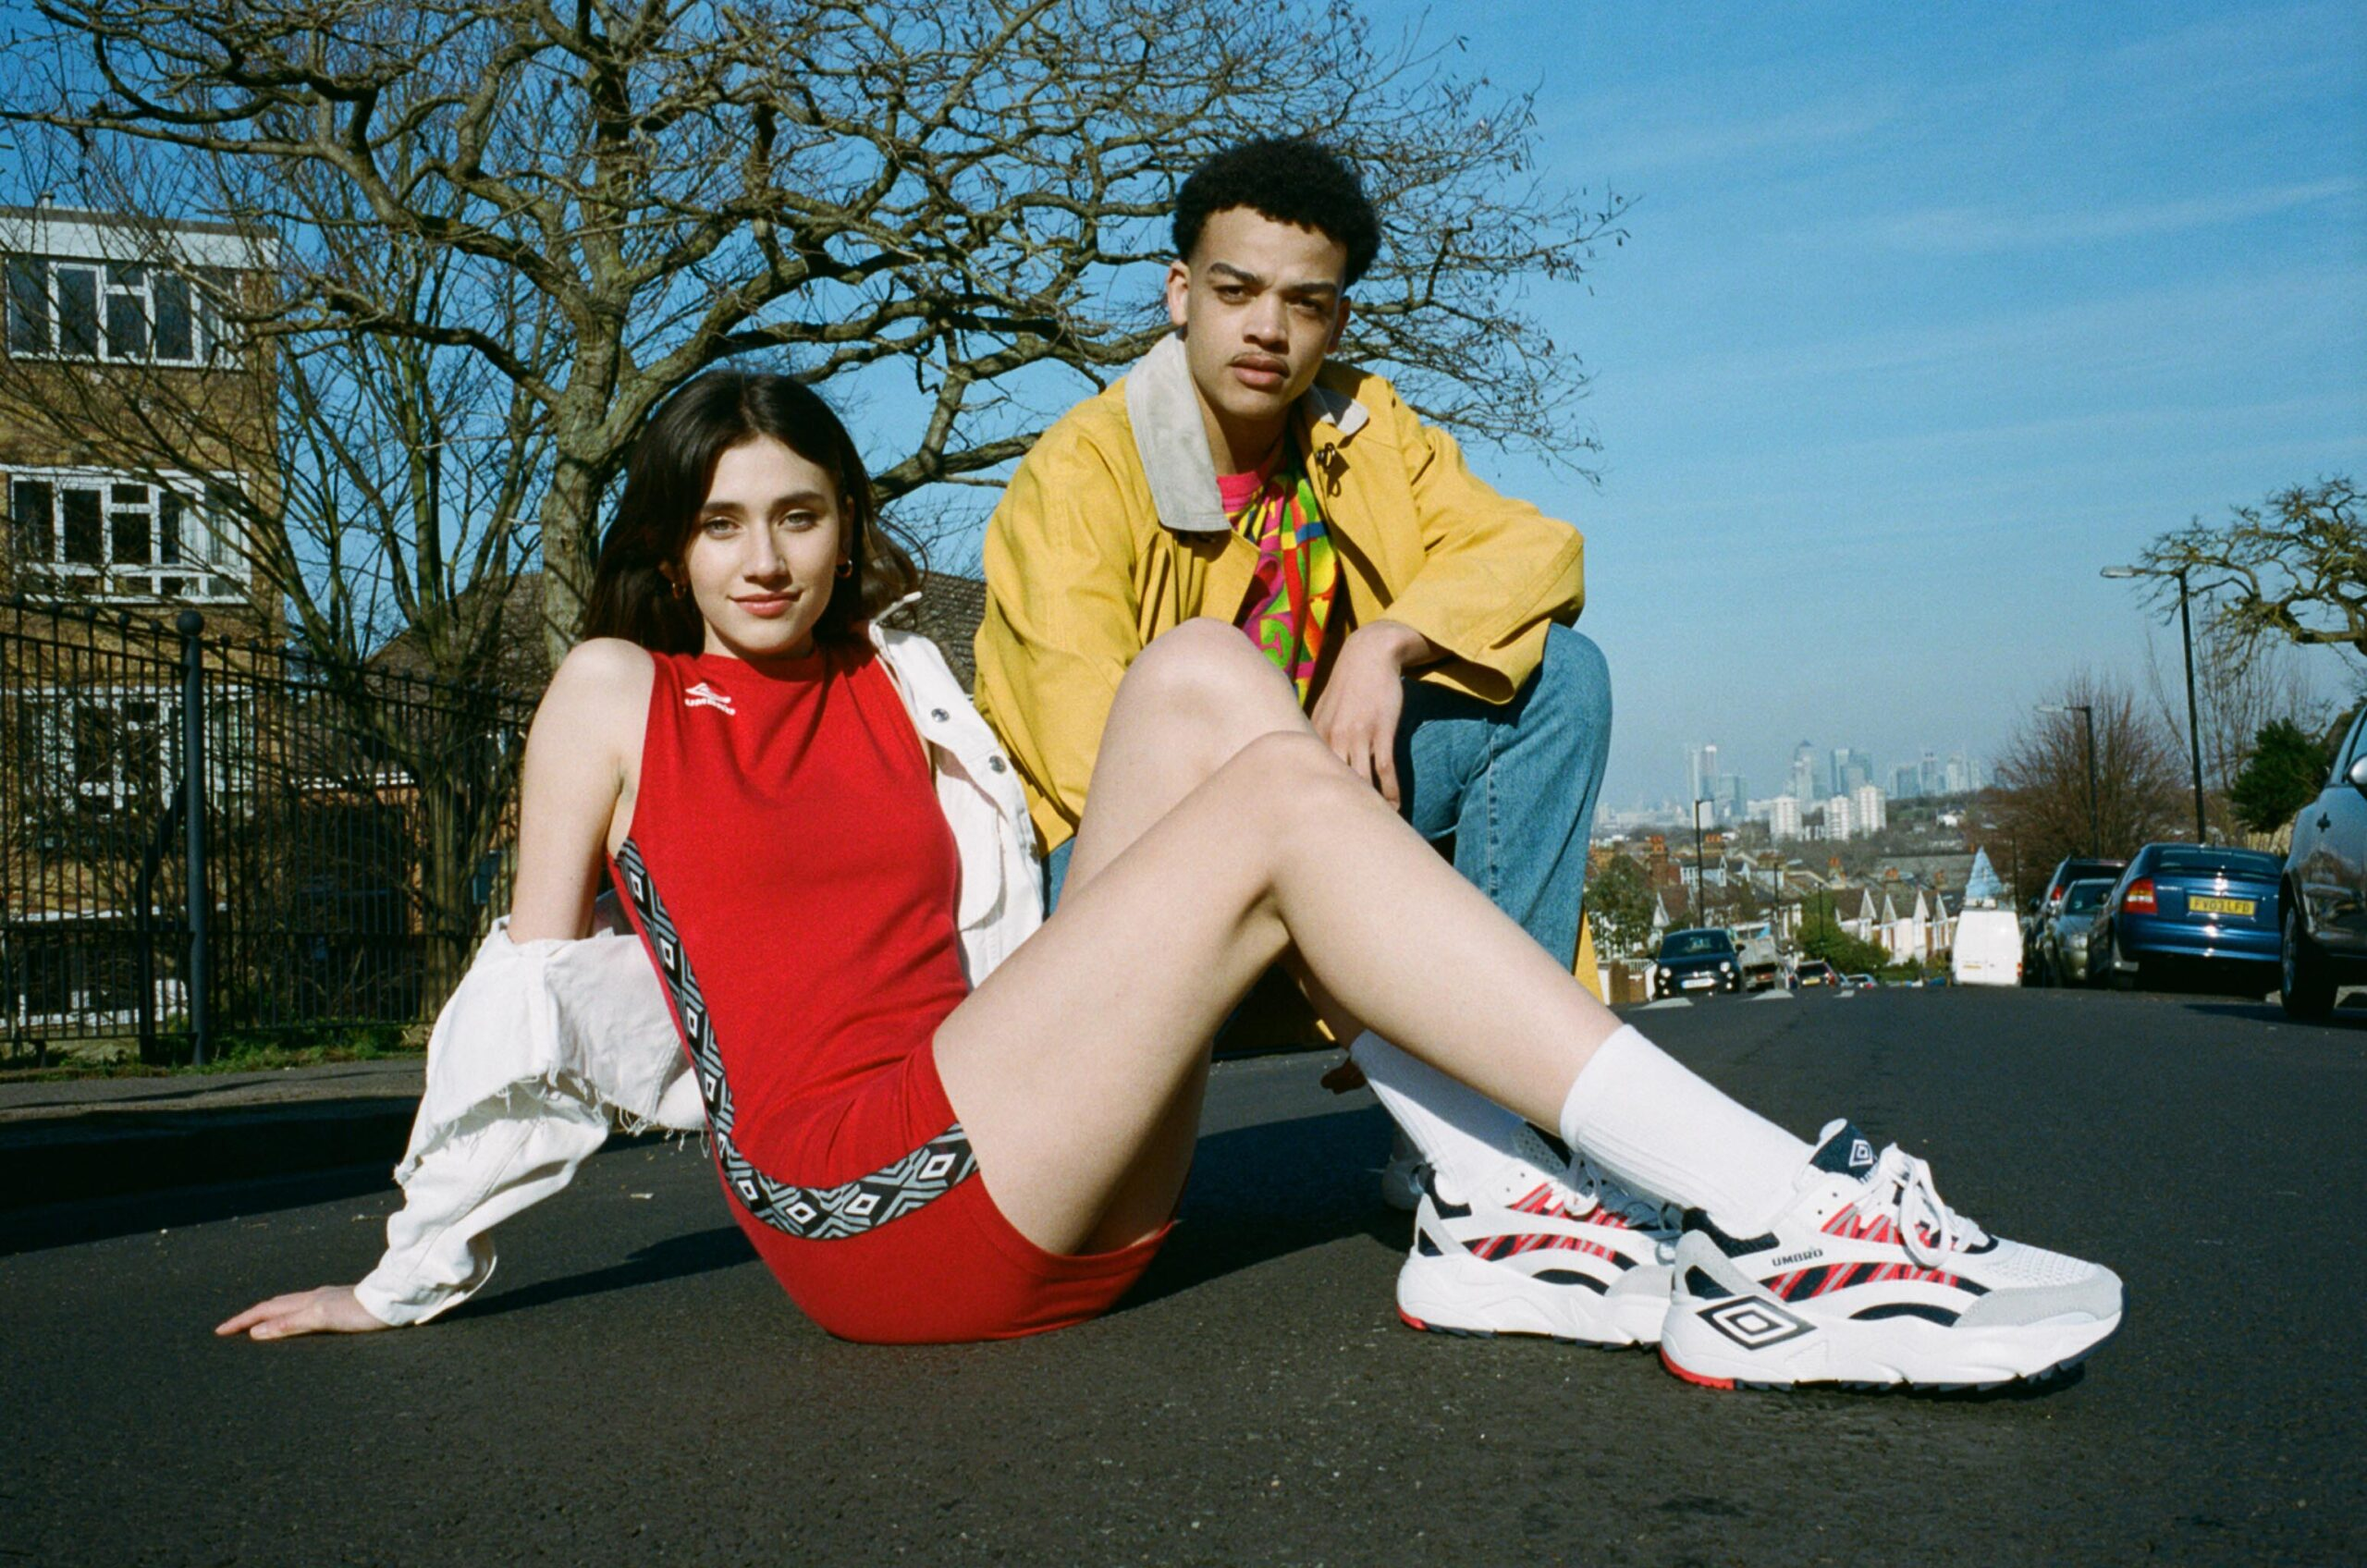 Umbro 2019 Sneakers That You Need to